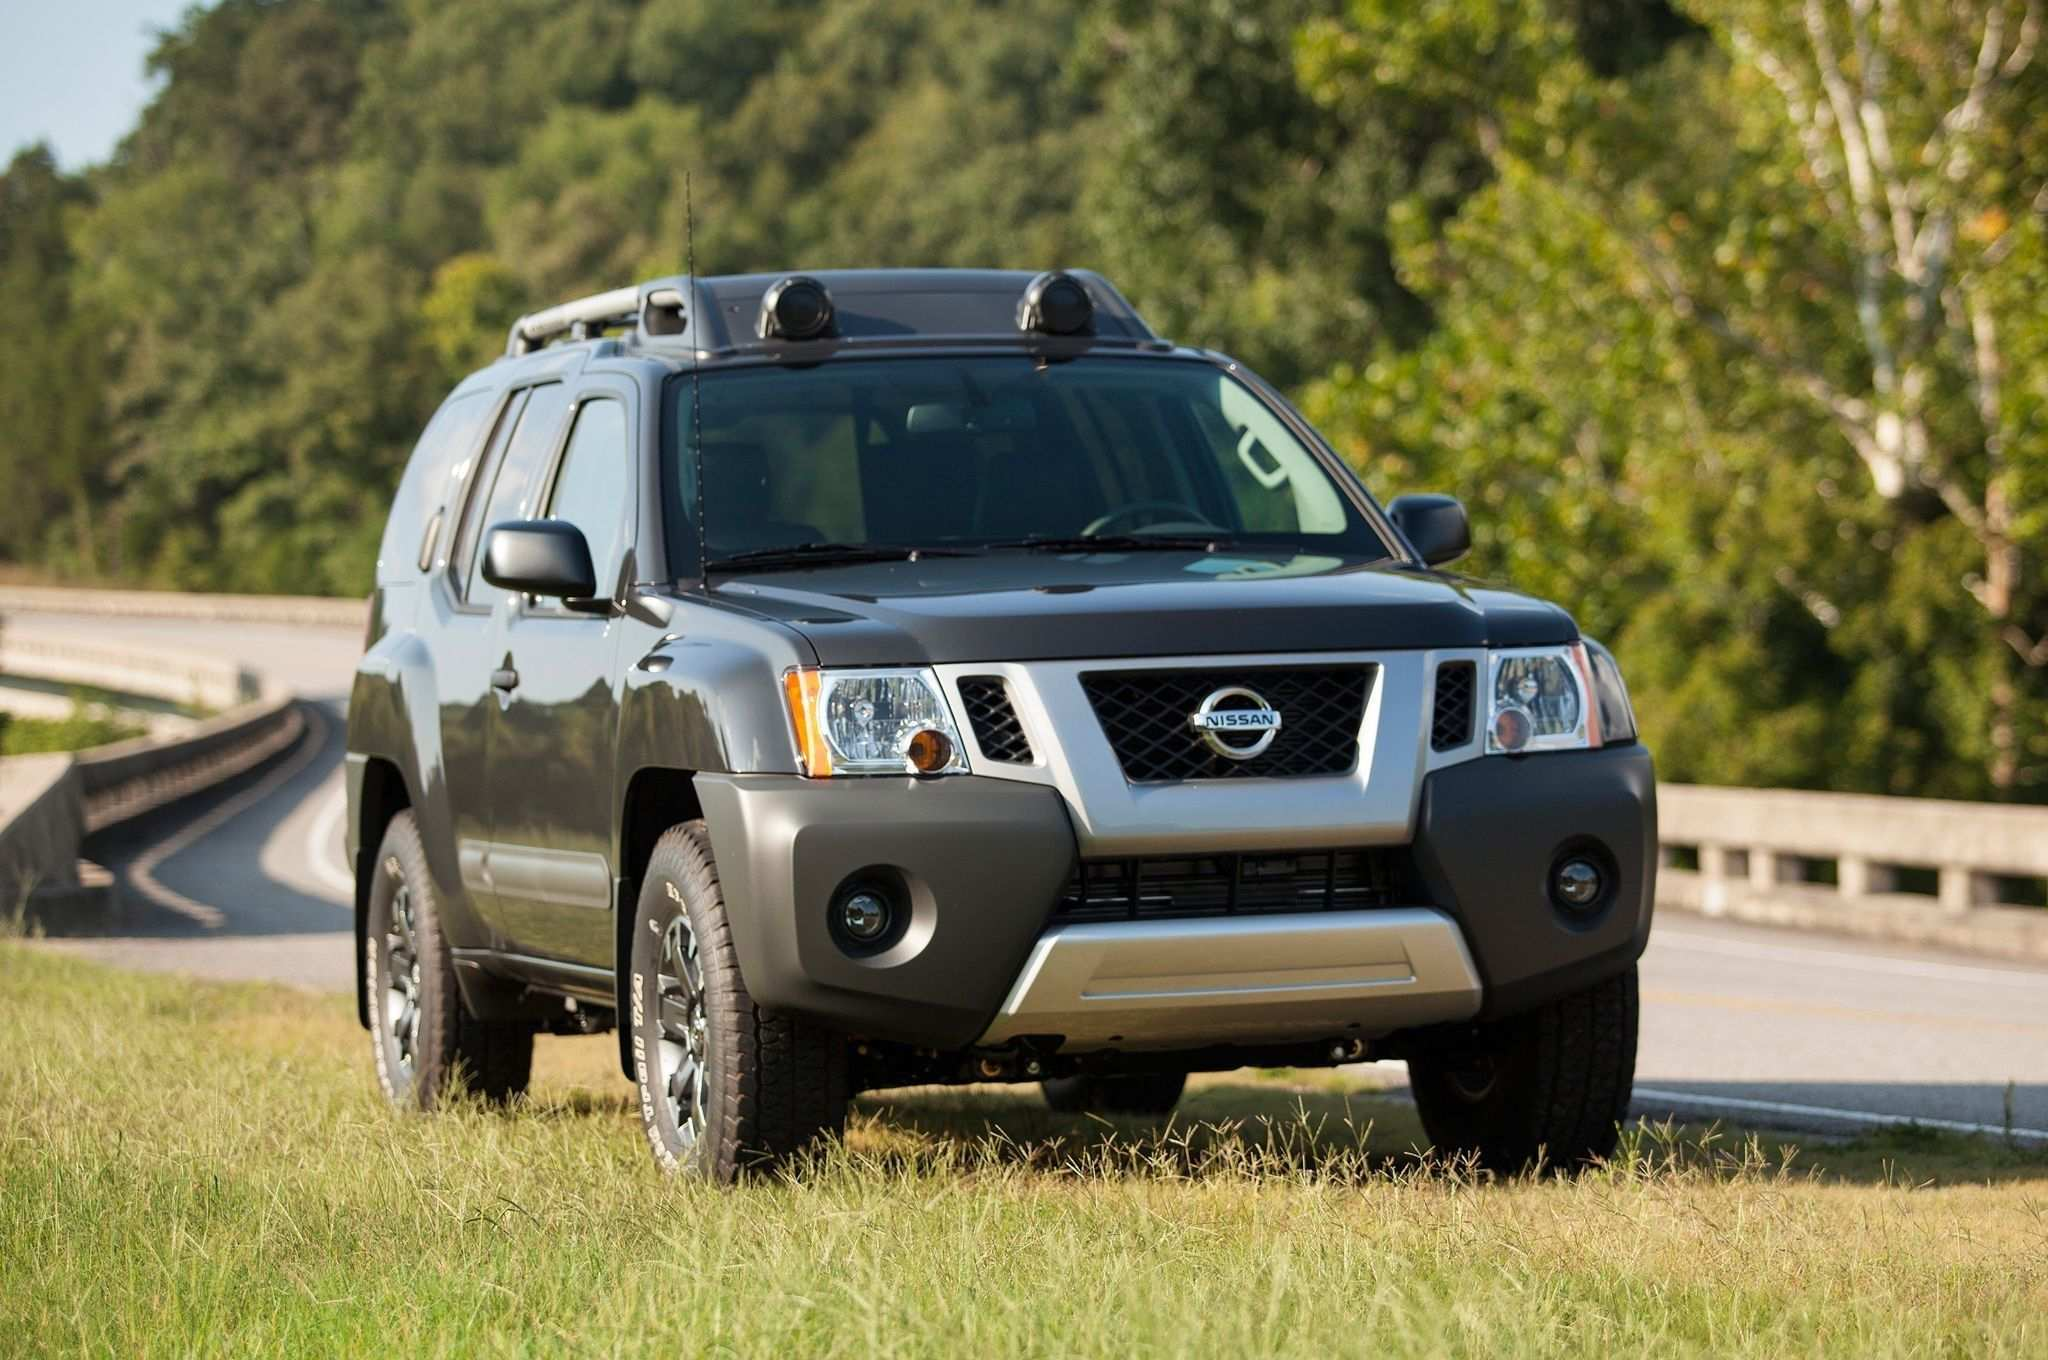 77 All New Nissan Xterra 2020 Exterior Date Reviews for Nissan Xterra 2020 Exterior Date